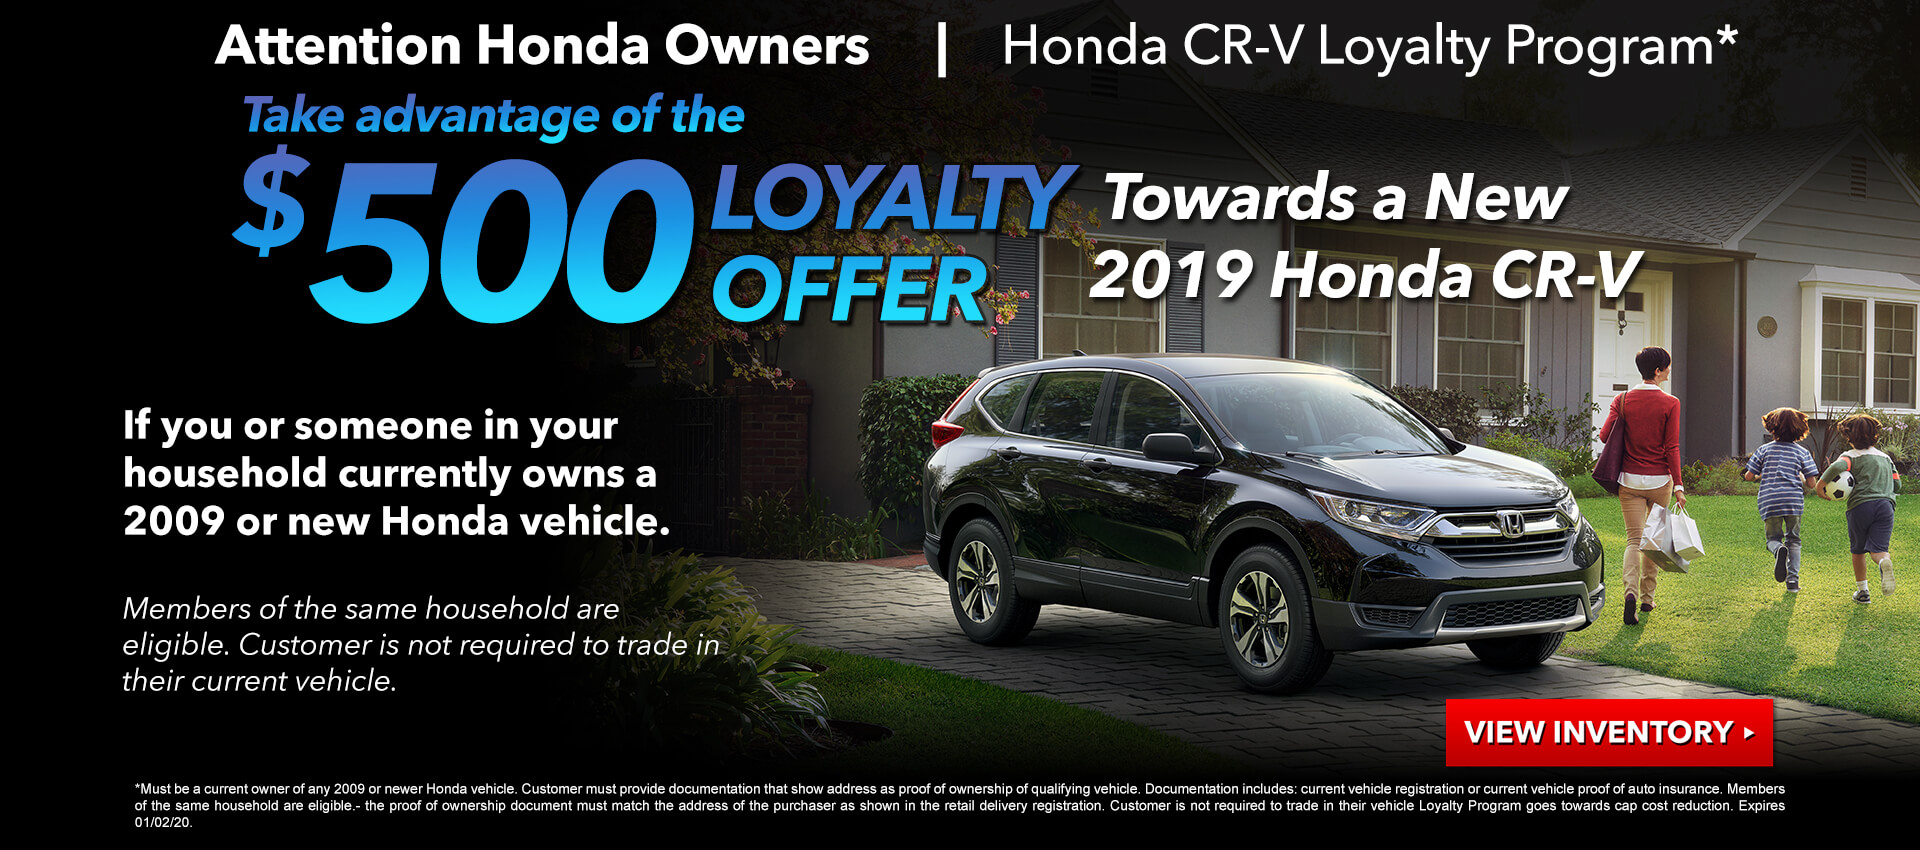 CRV Loyalty